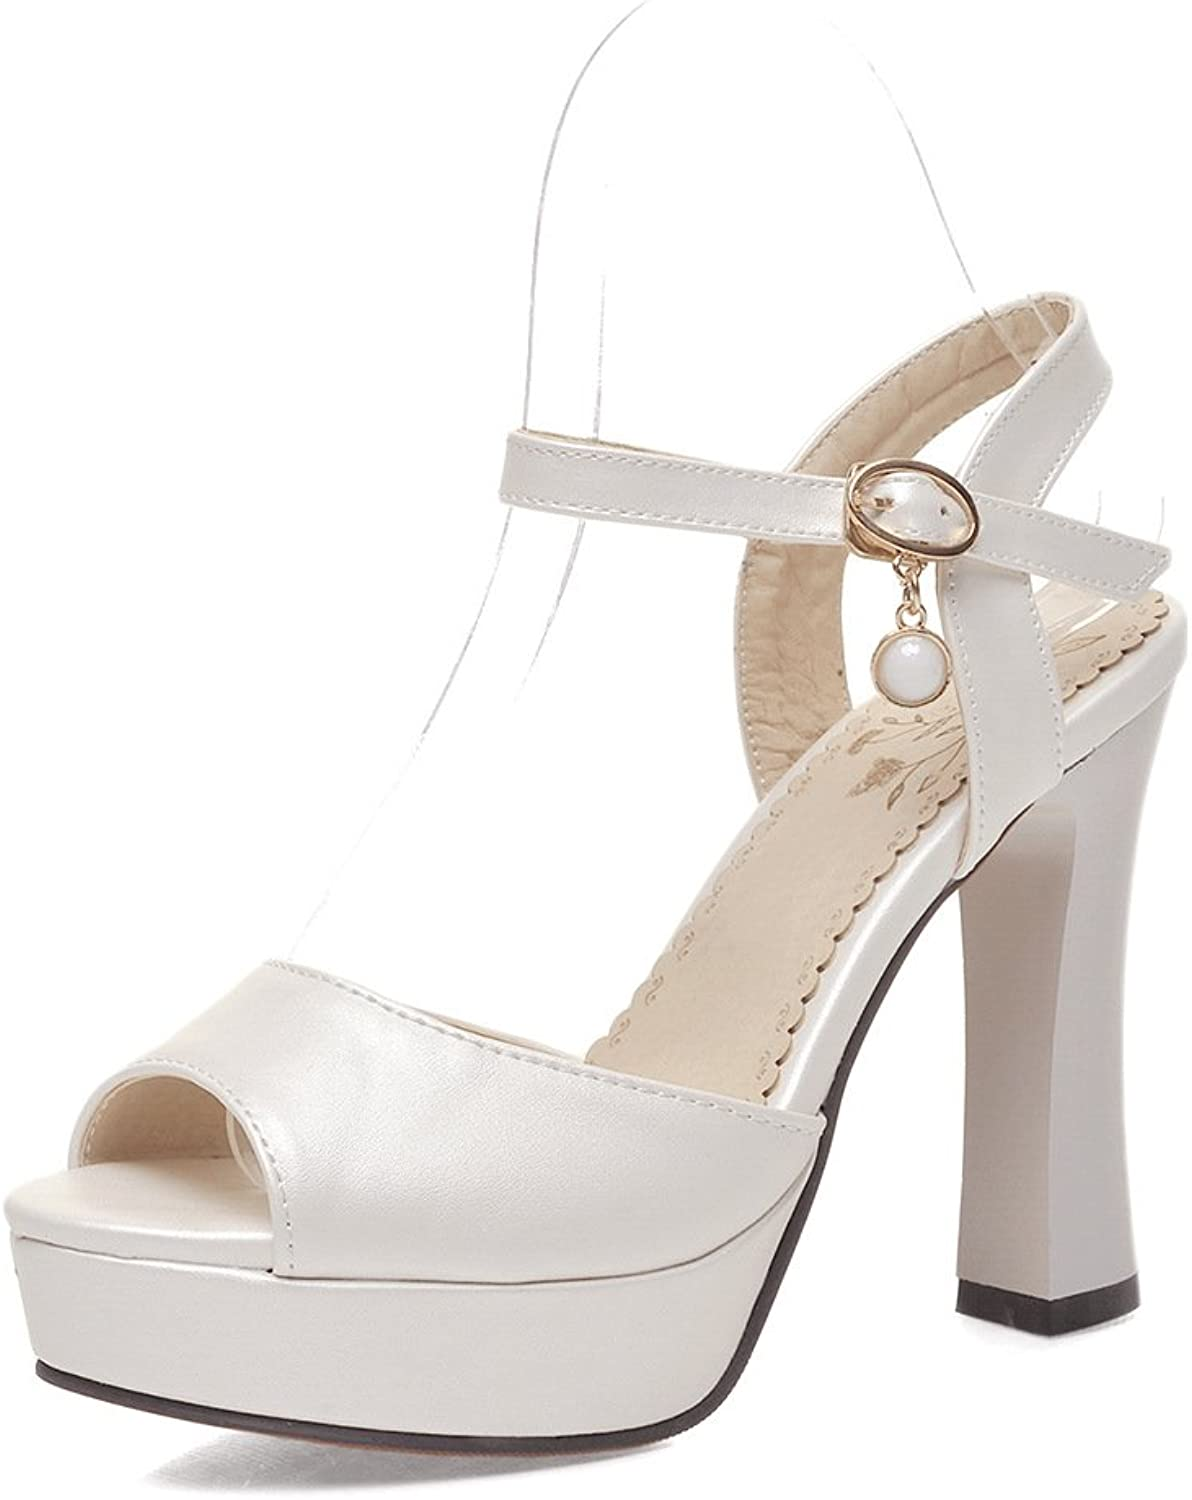 WHW Women's Spring Summer Fall PU Dress Casual Party Evening Wedge Heel Sandals,White,42